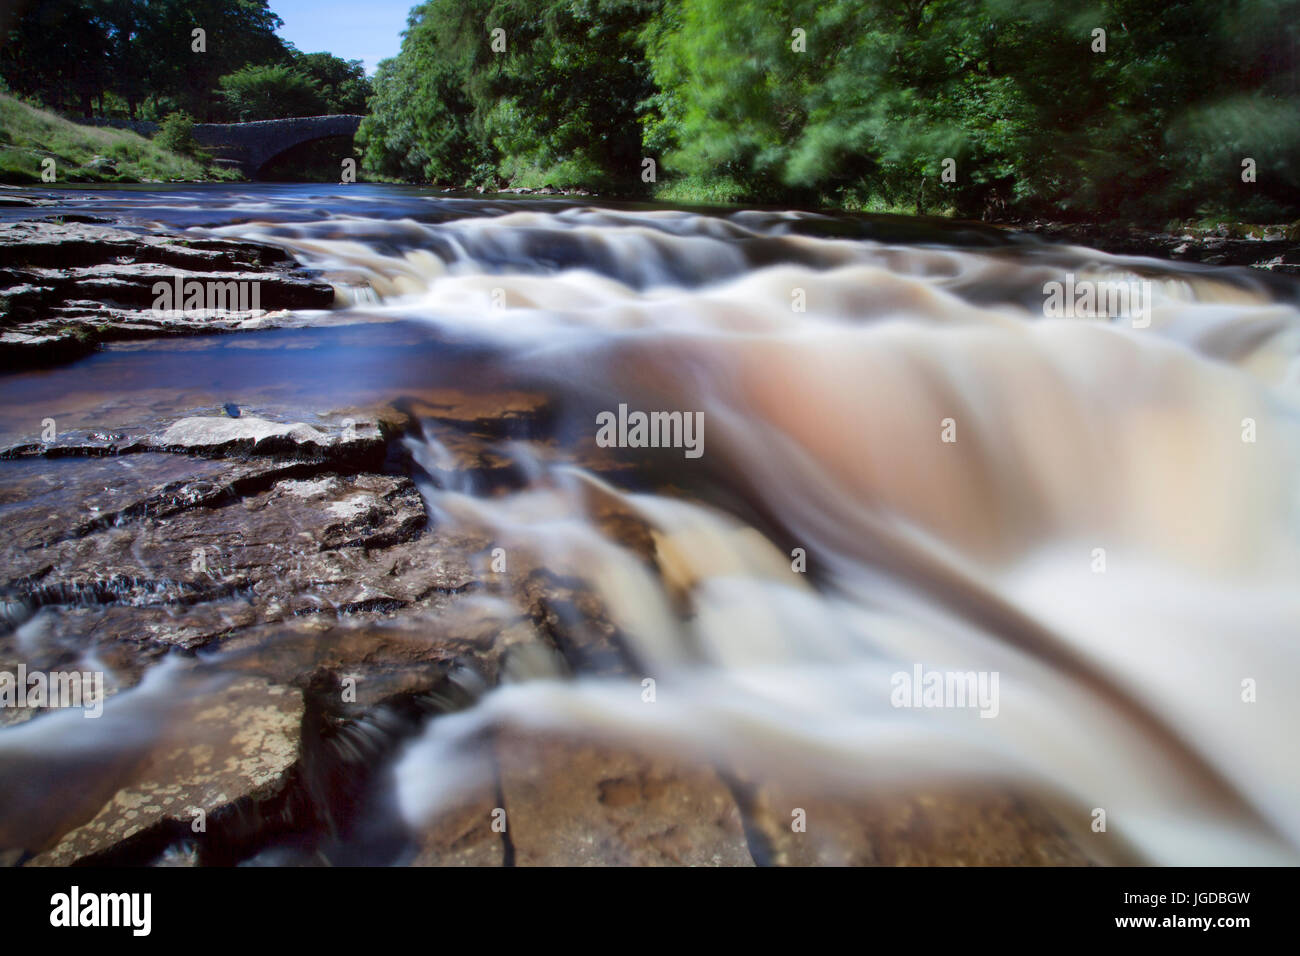 Stainforth Force Waterfalls and Bridge, near Settle, North Yorkshire Dales - Stock Image